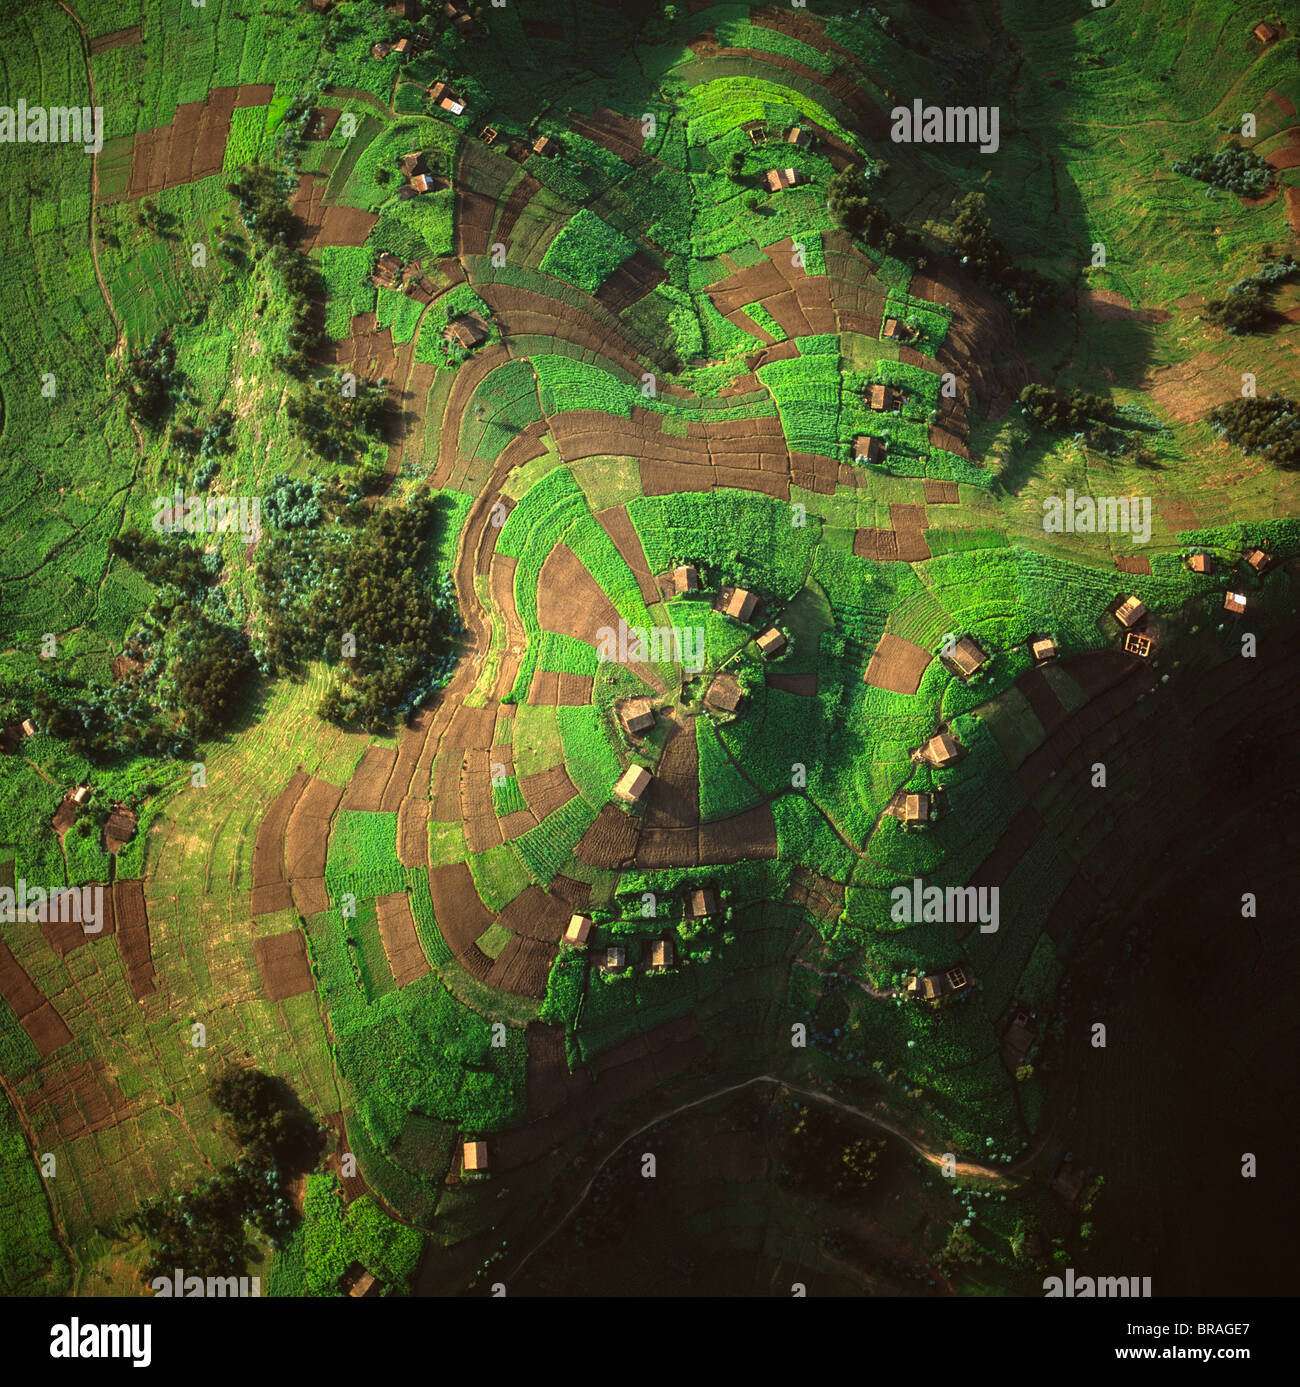 Aerial view of intensive agriculture in Rwanda, Africa - Stock Image